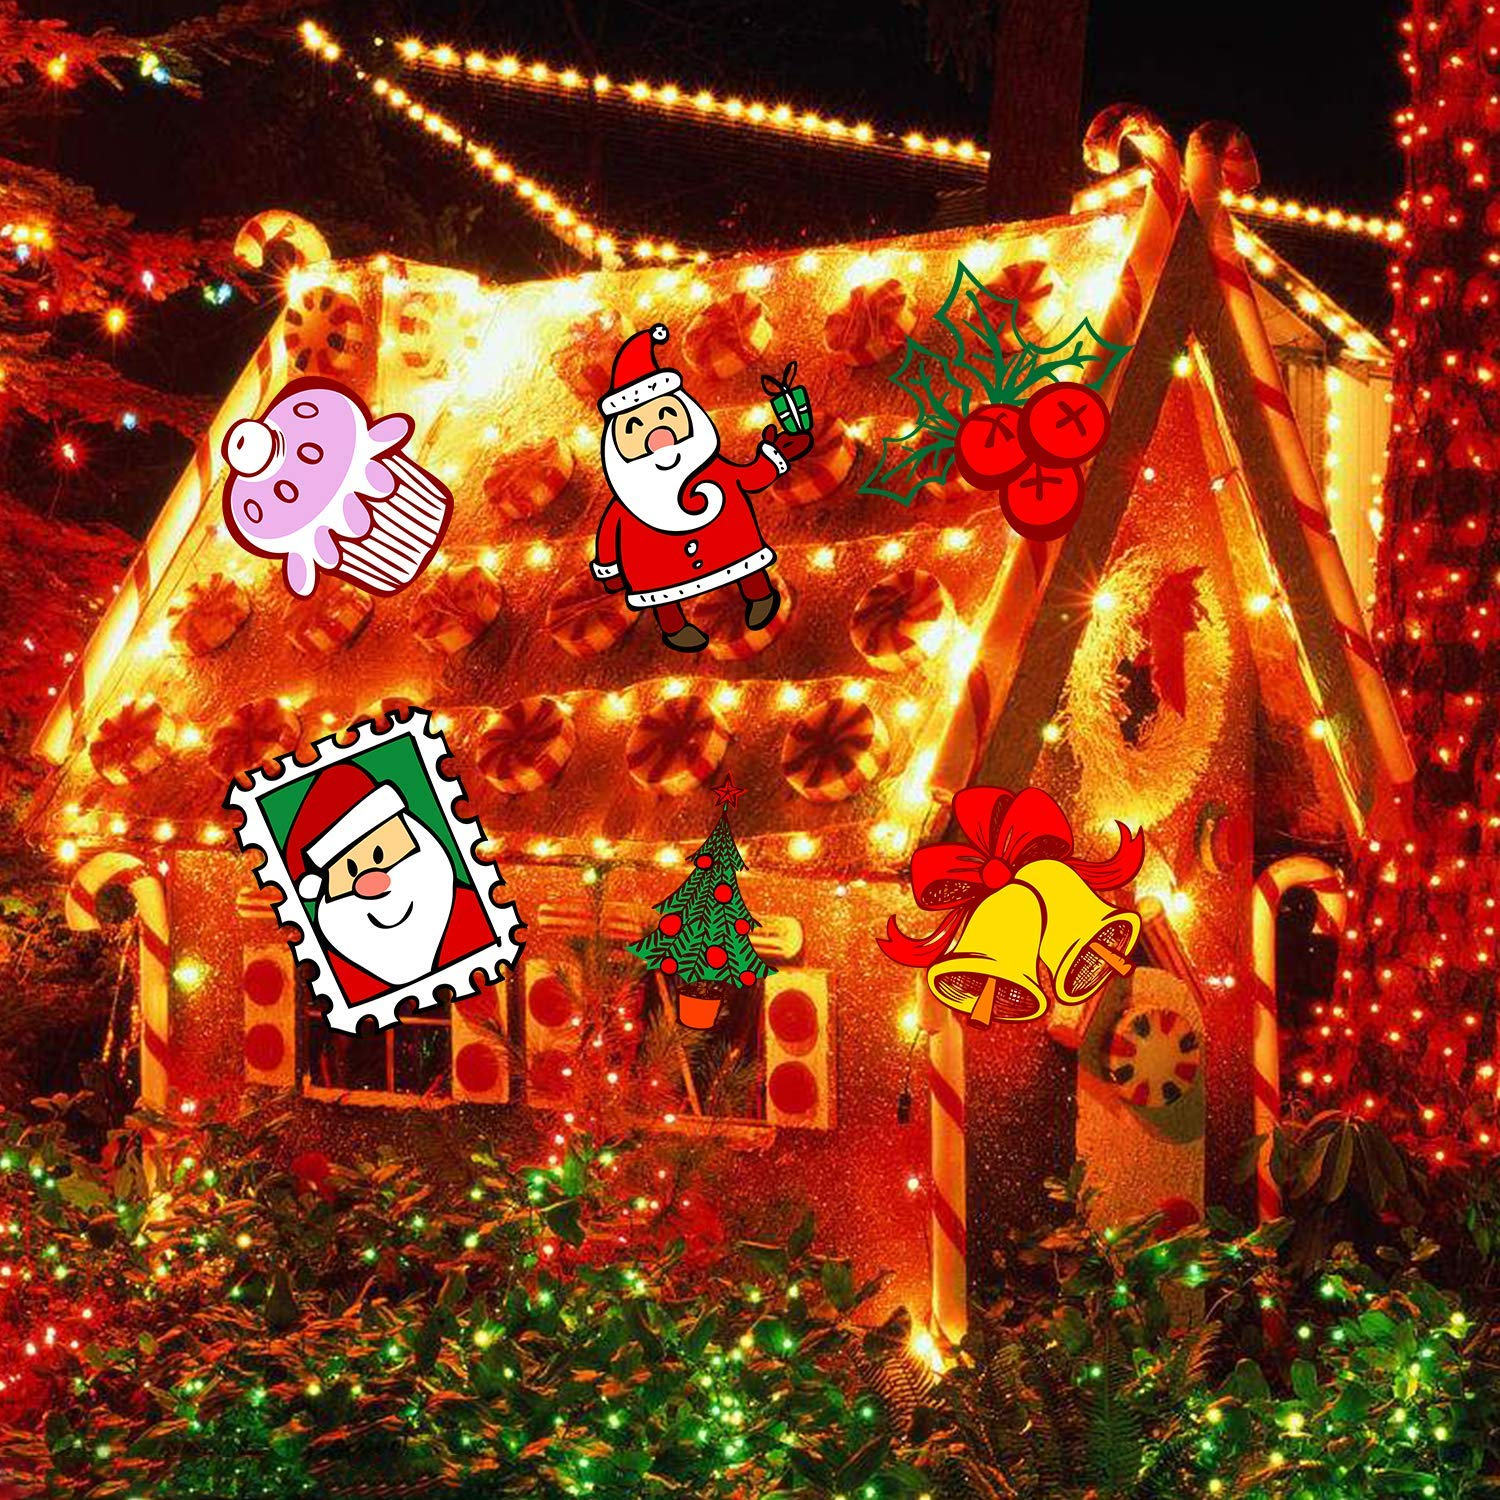 Portable Christmas Lights.Kmashi Christmas Light Led Portable Flashlight Build In 12 Rotatable Patterns Battery Operated Projector Light Holiday Decorative Light For